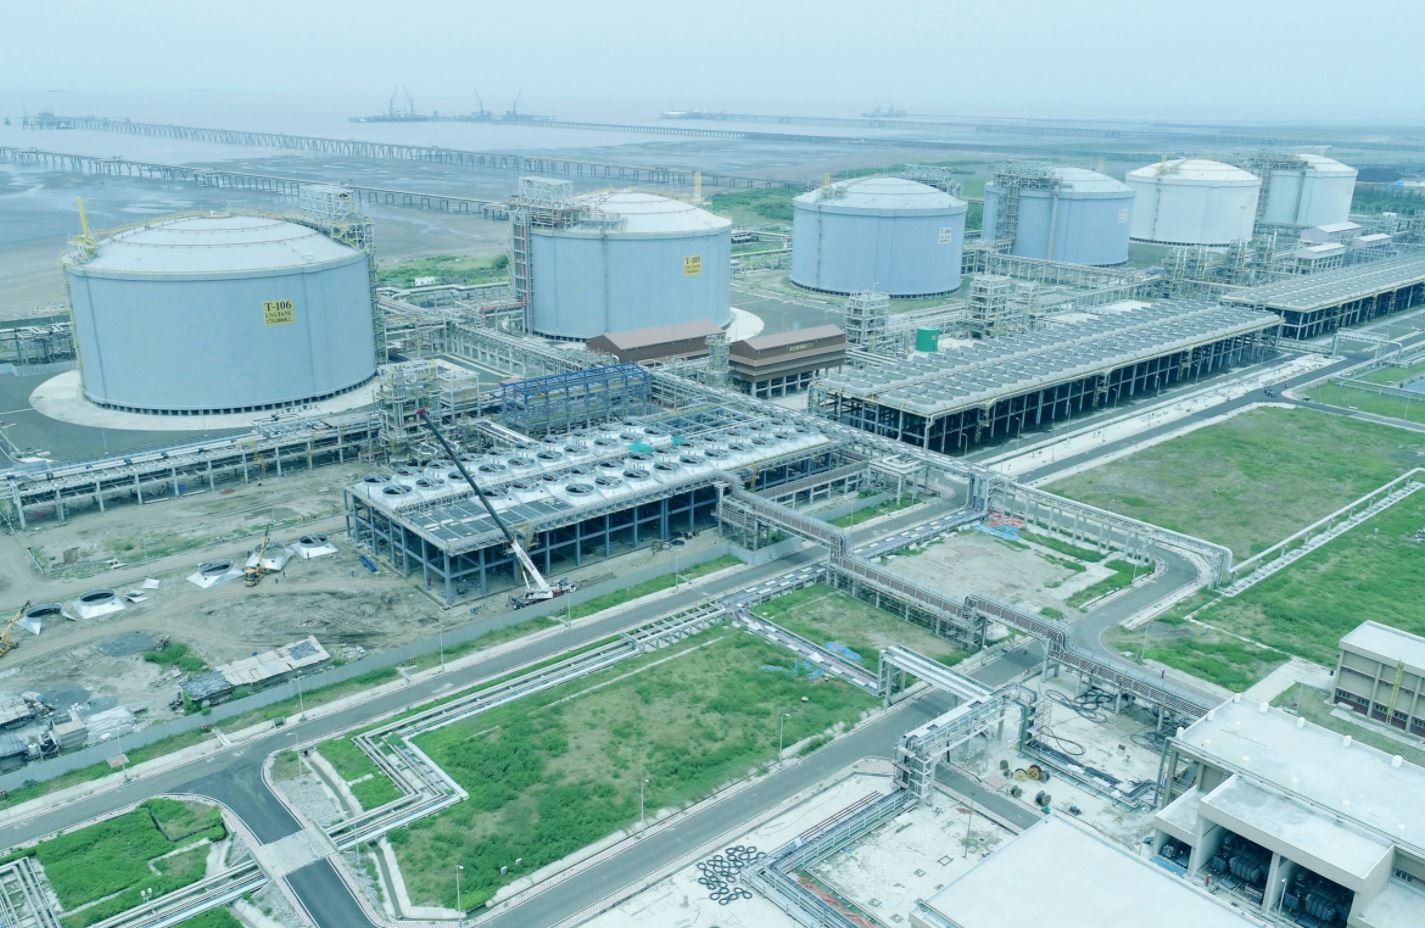 India's June LNG imports drop 17.3 percent year-on-year